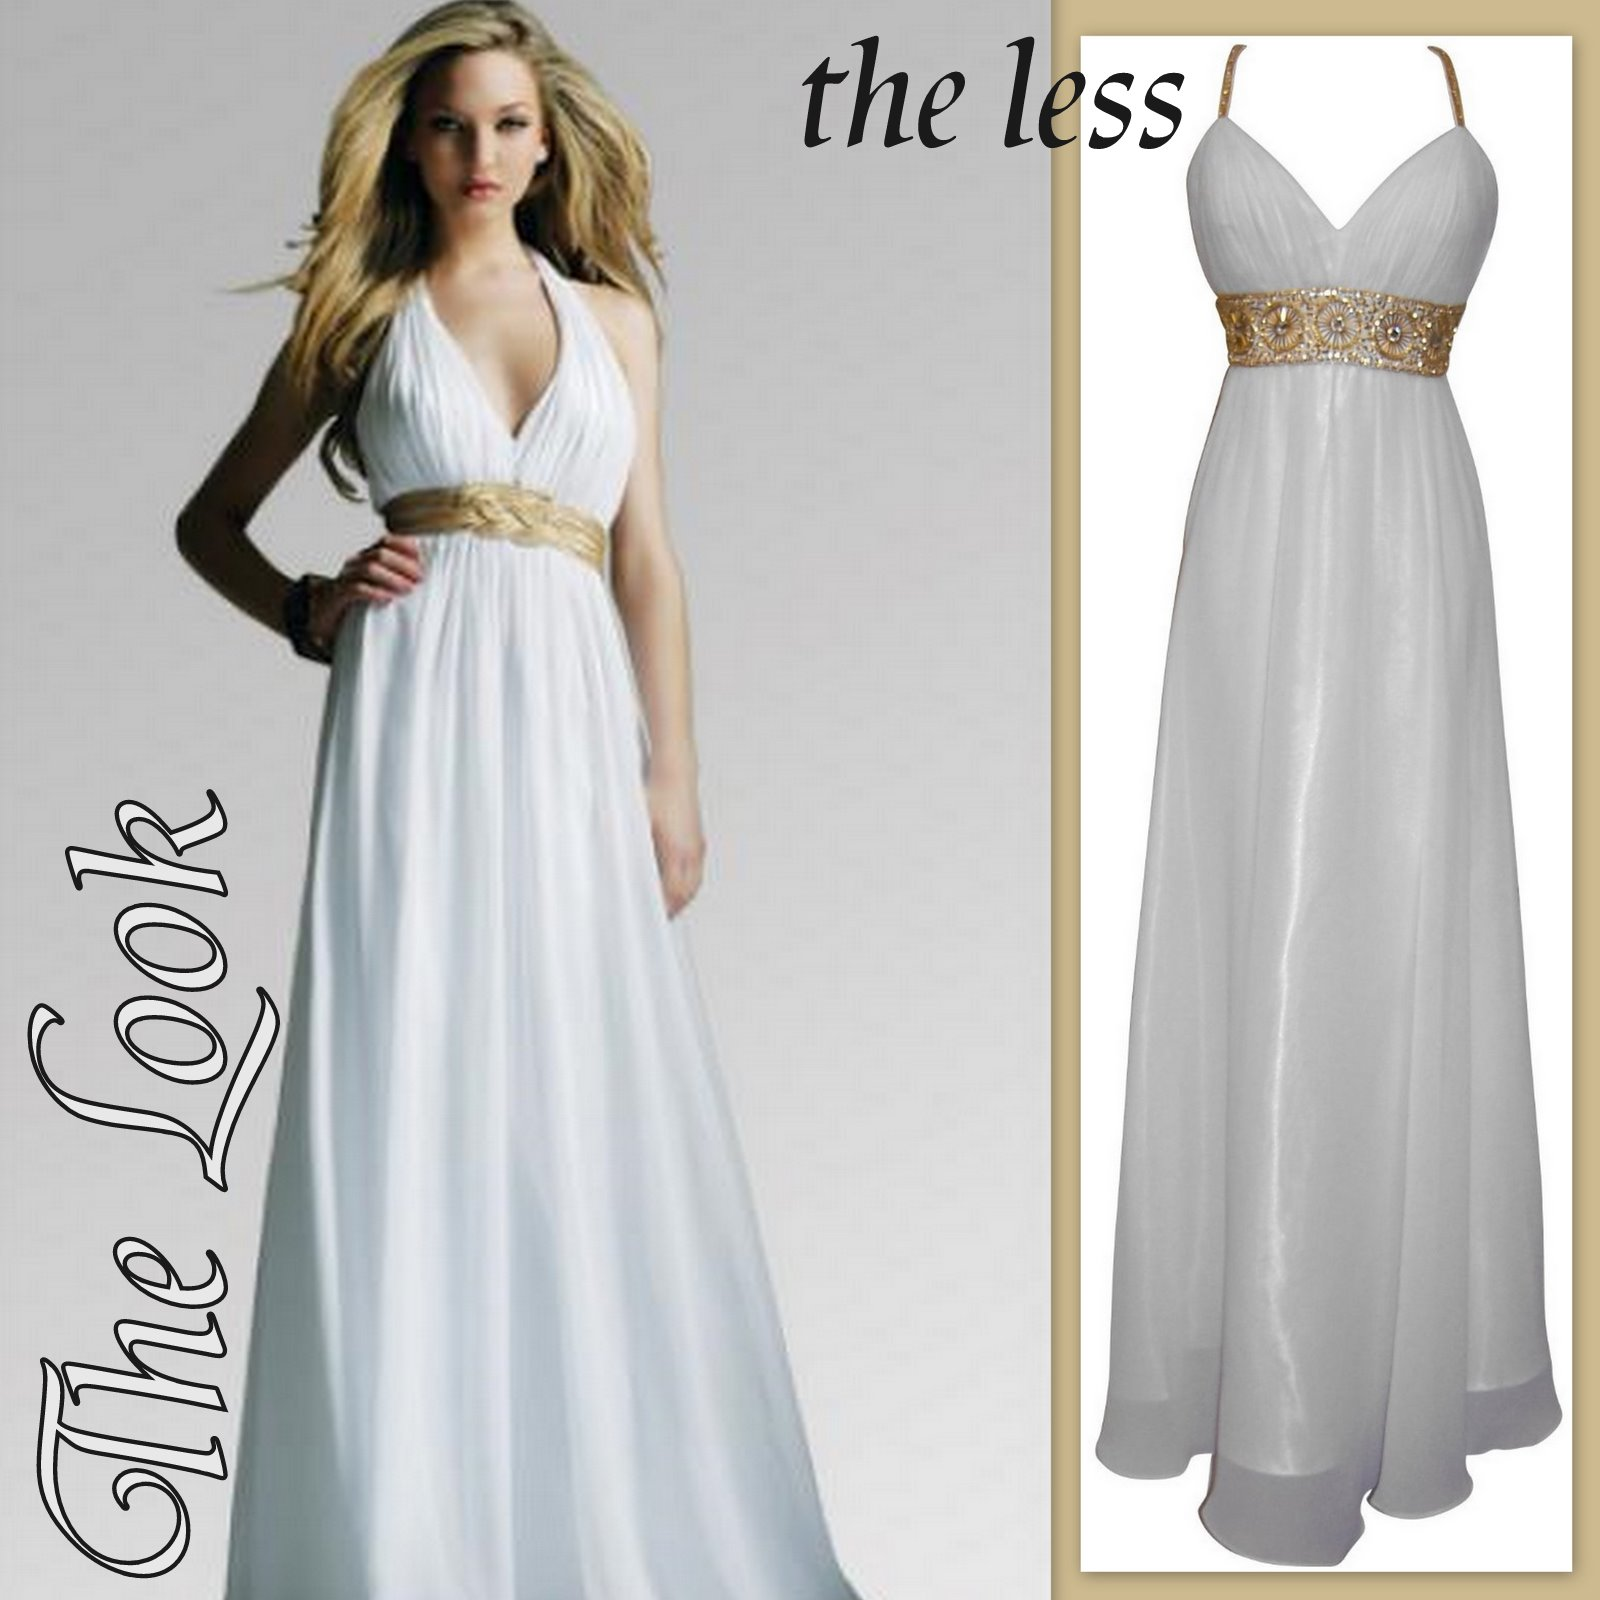 Get the Wedding Look For Less: Look for less: Goddess Like dresses